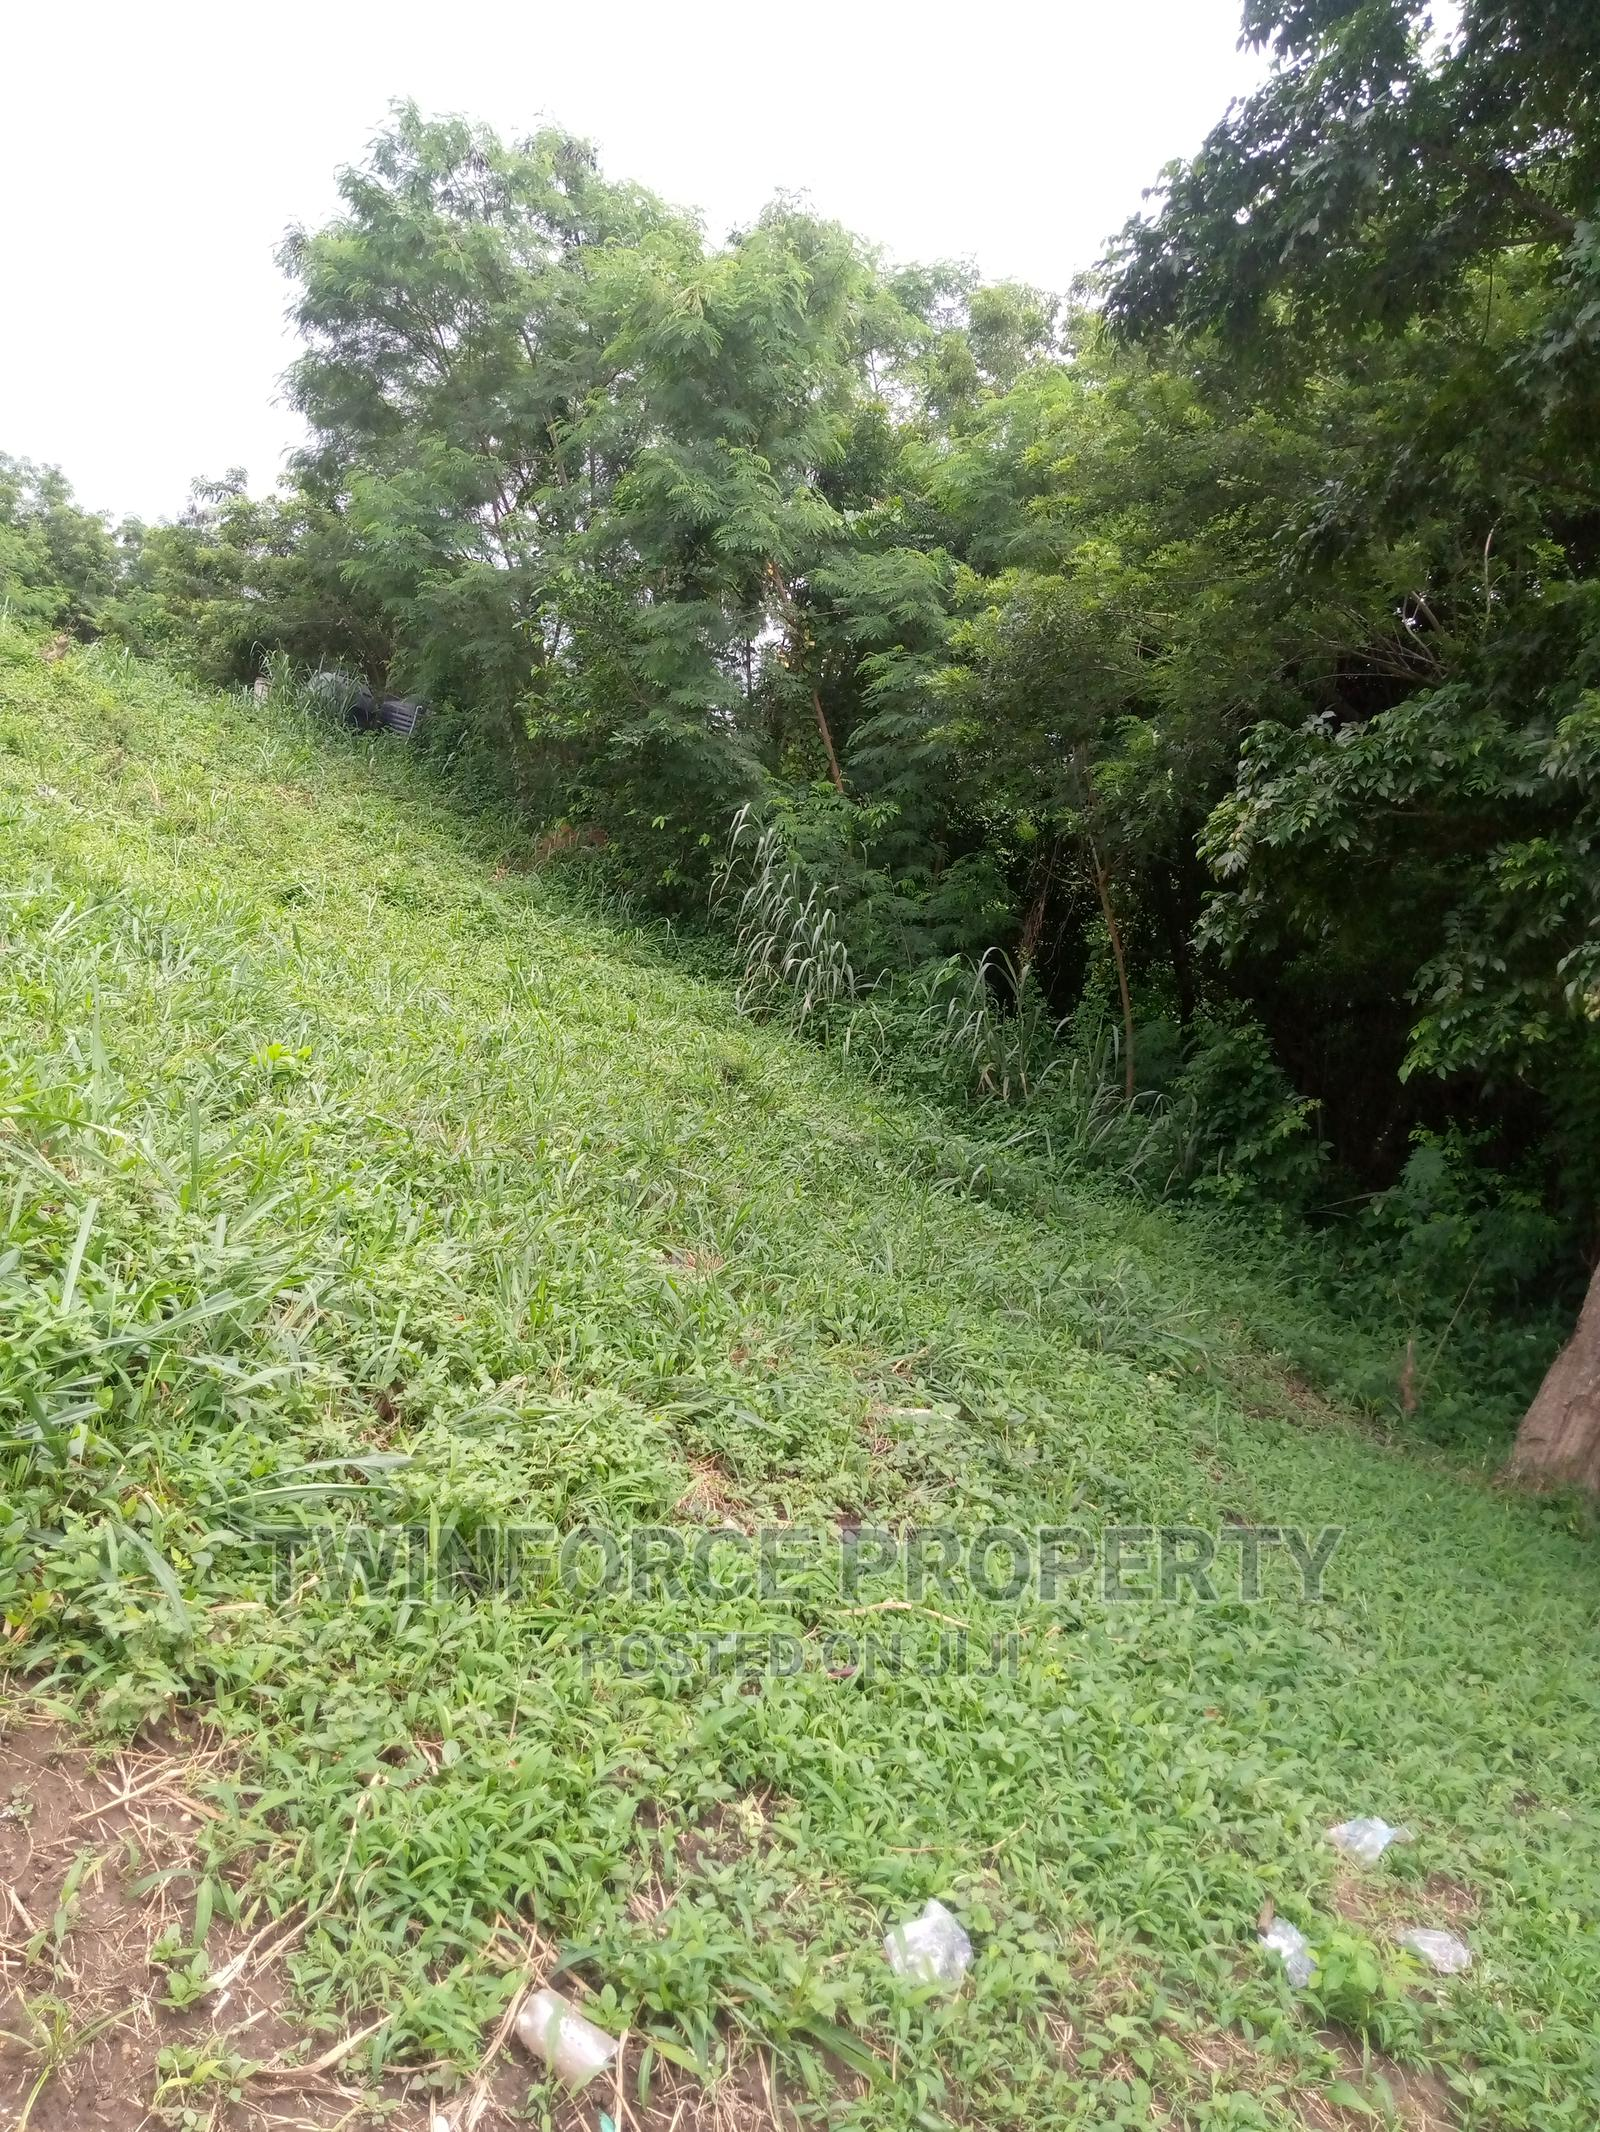 3.6 Hectares Multipurpose Land for Sale